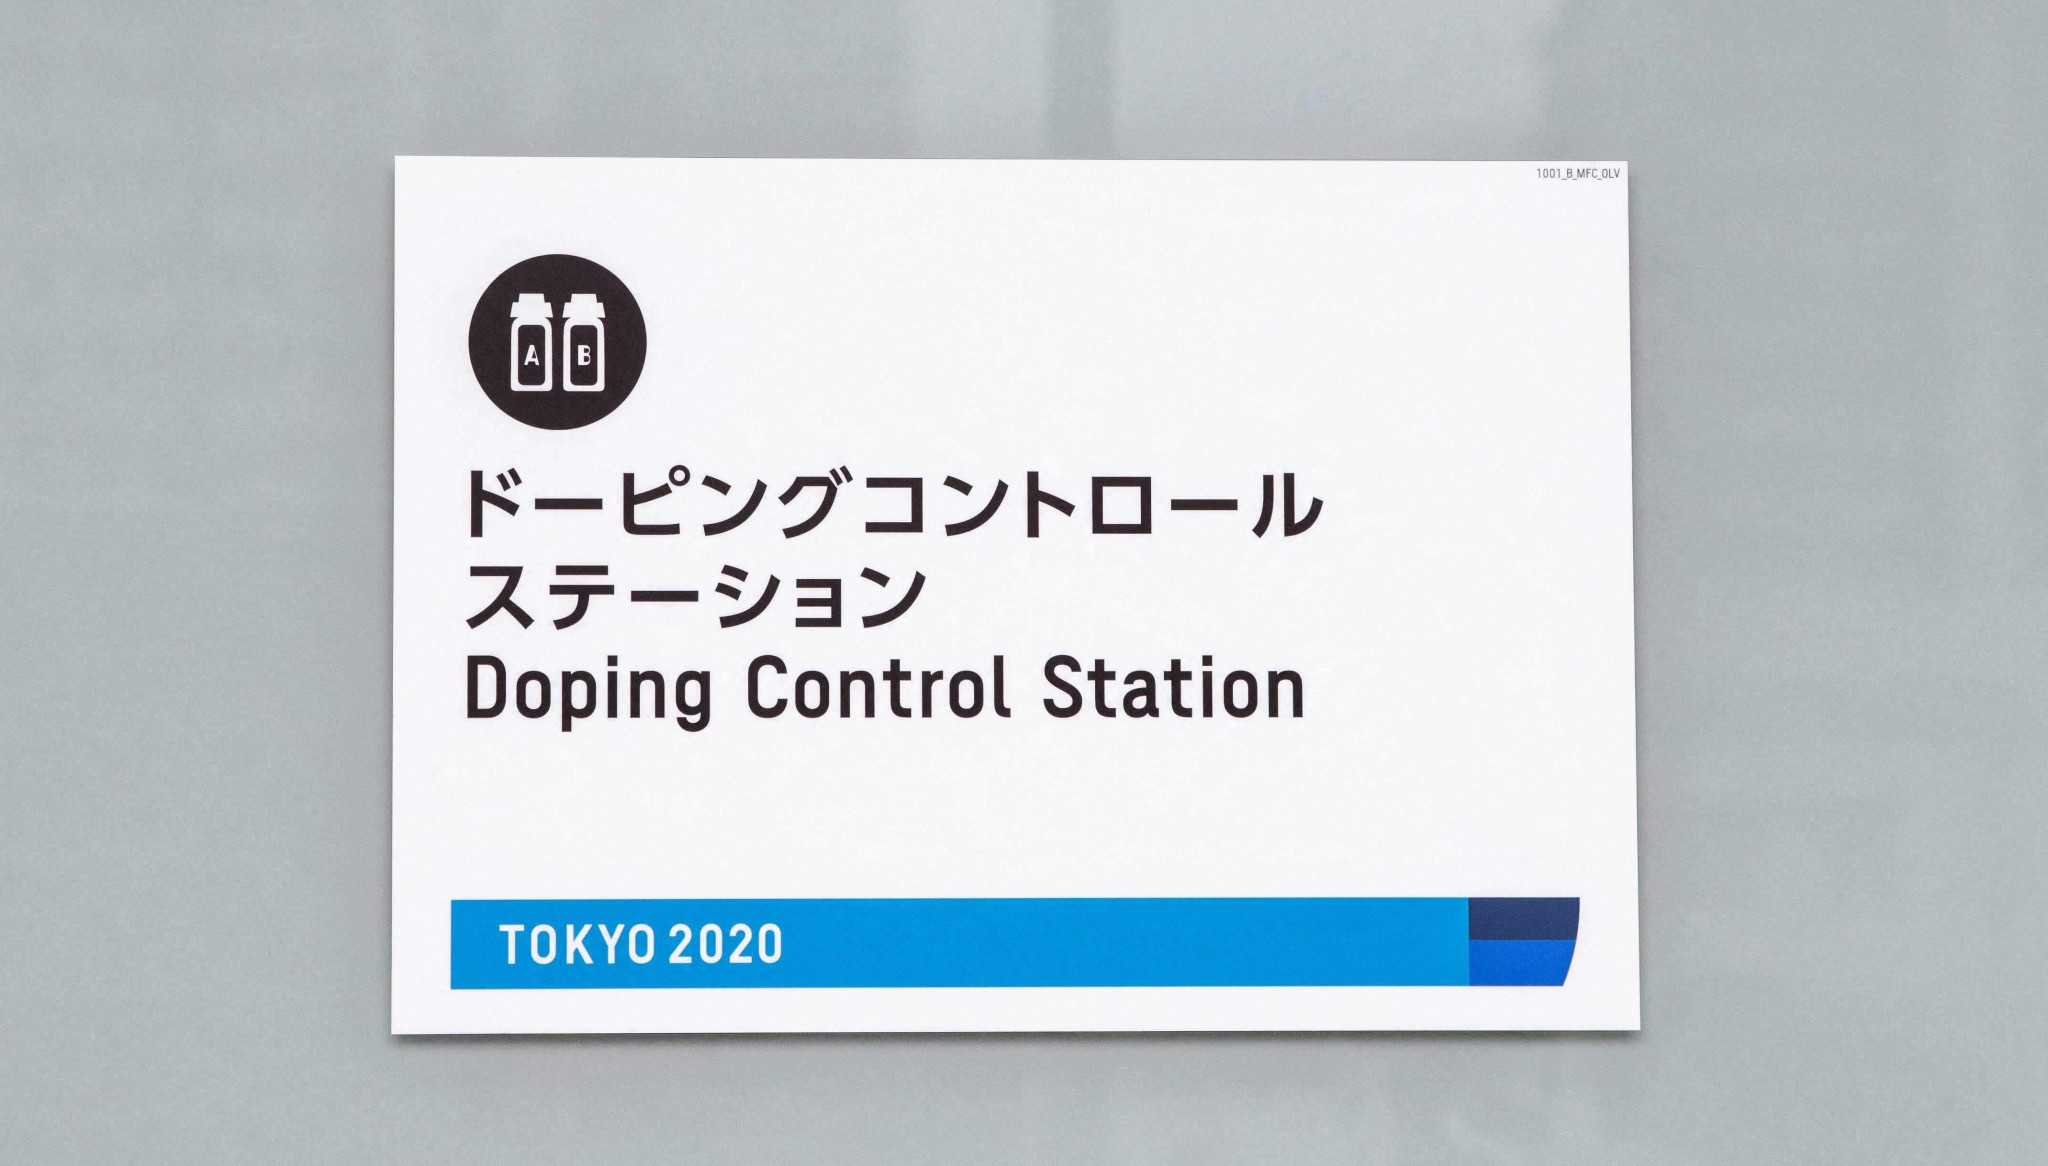 International Testing Agency collects more than 6,000 samples as part of Tokyo 2020 anti-doping programme